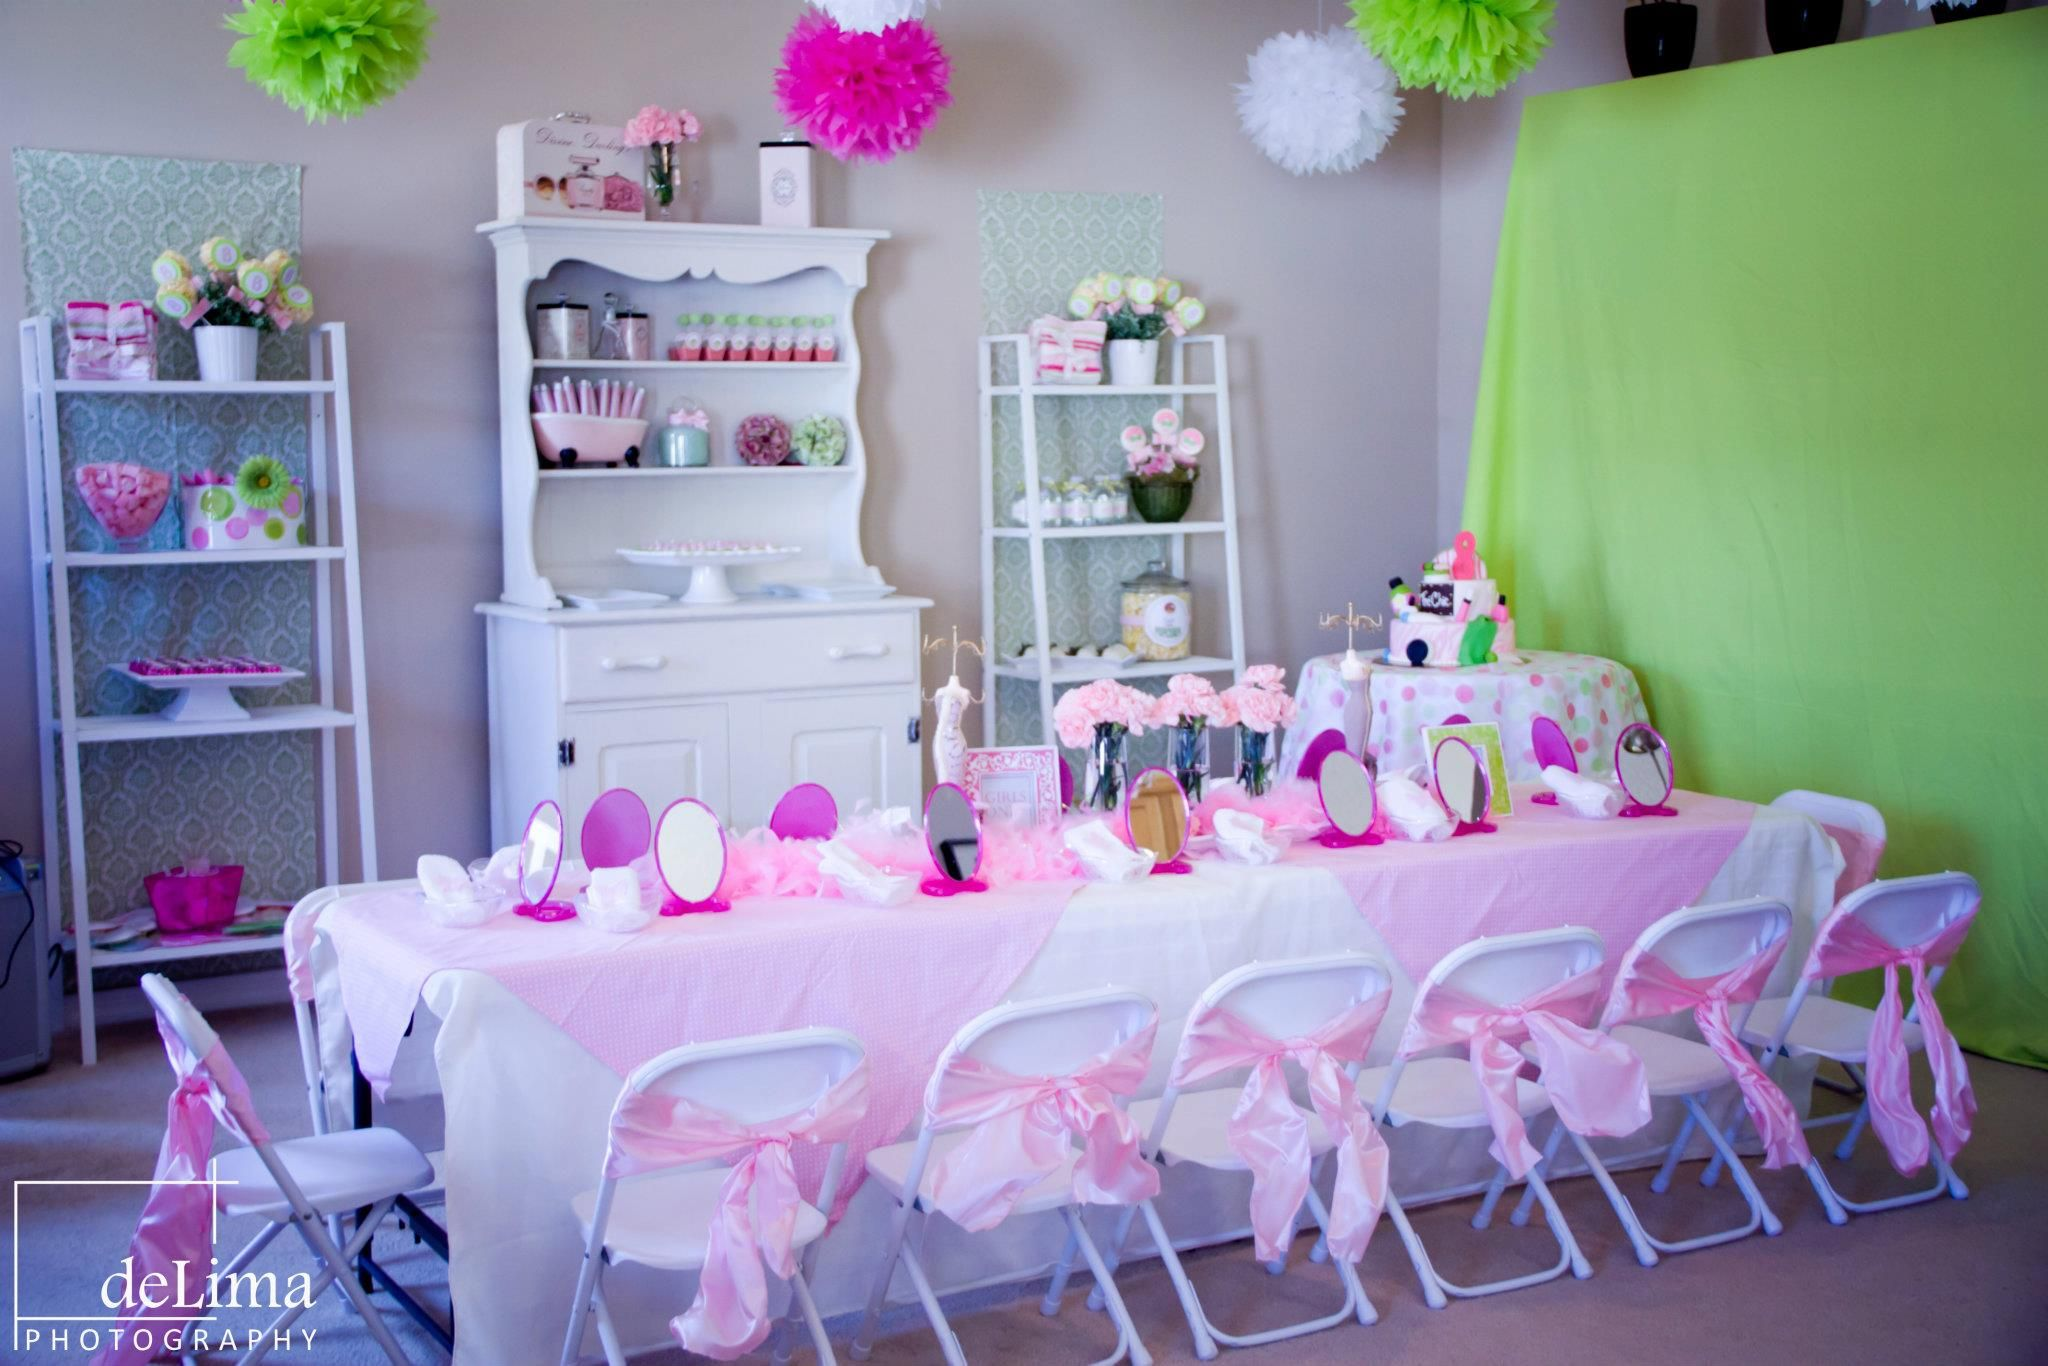 Super Chic Spa Party | Spa party decorations, Spa party and Spa ...